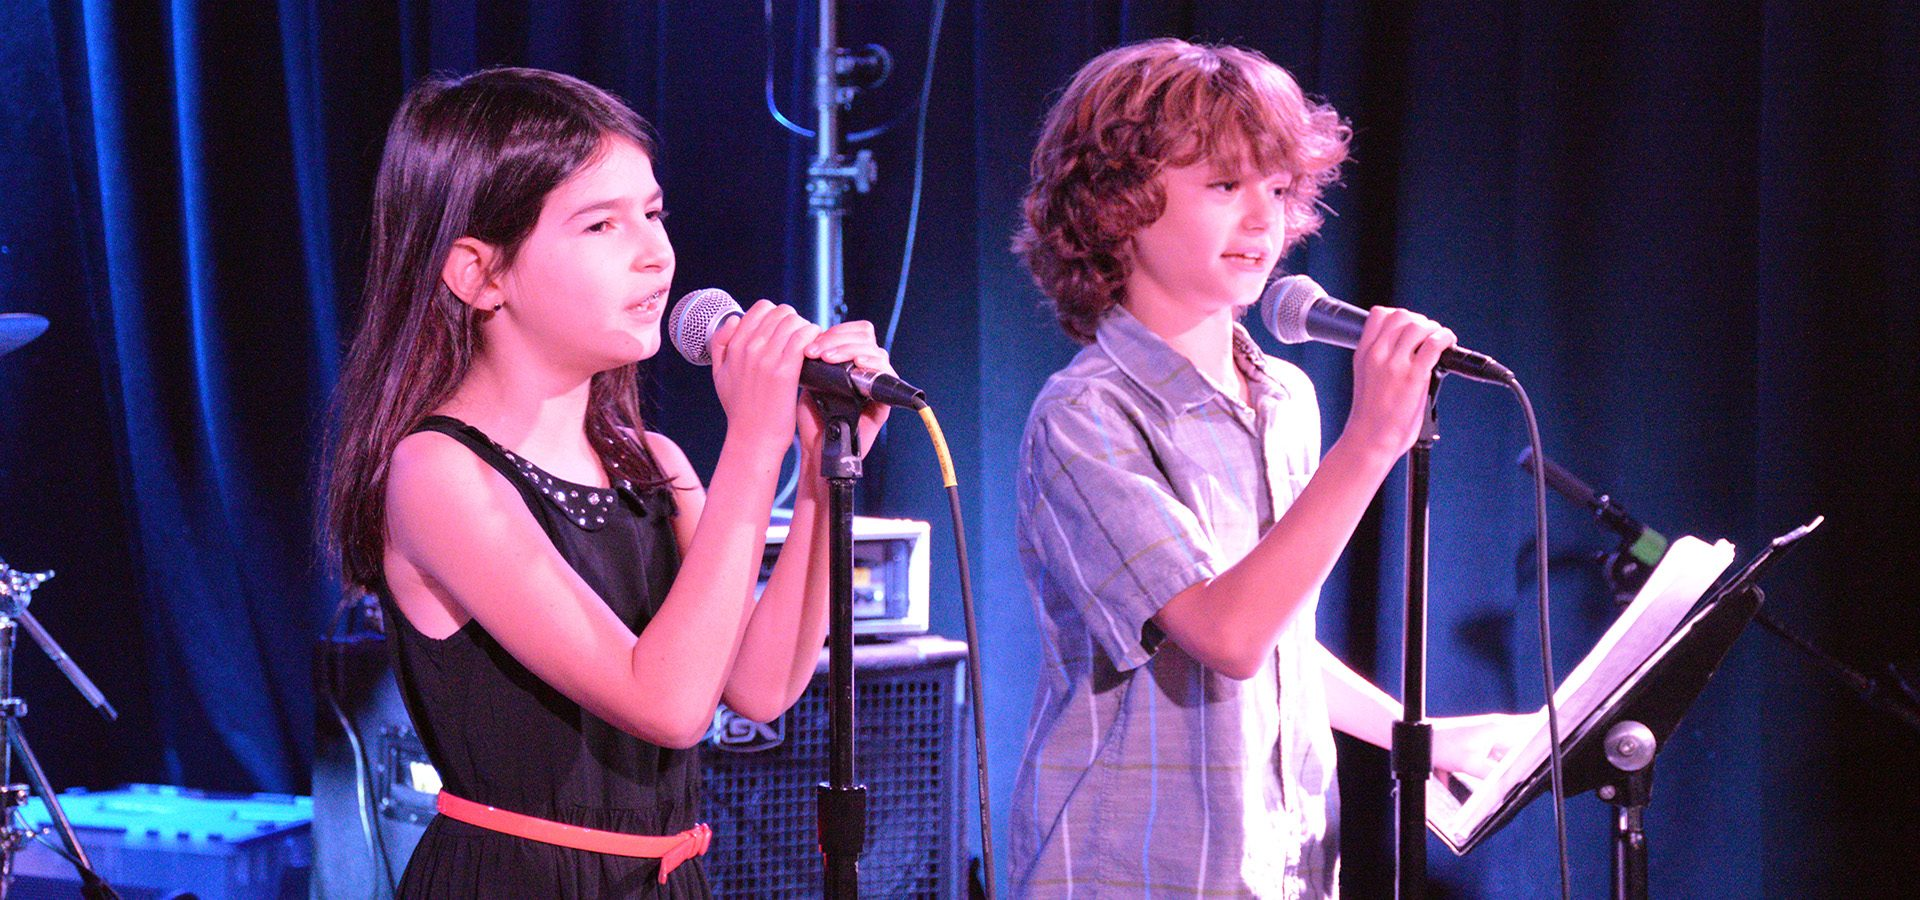 Singing Music Camp - Girl and Boy - Sherman Oaks, Los Angeles - Join The Band